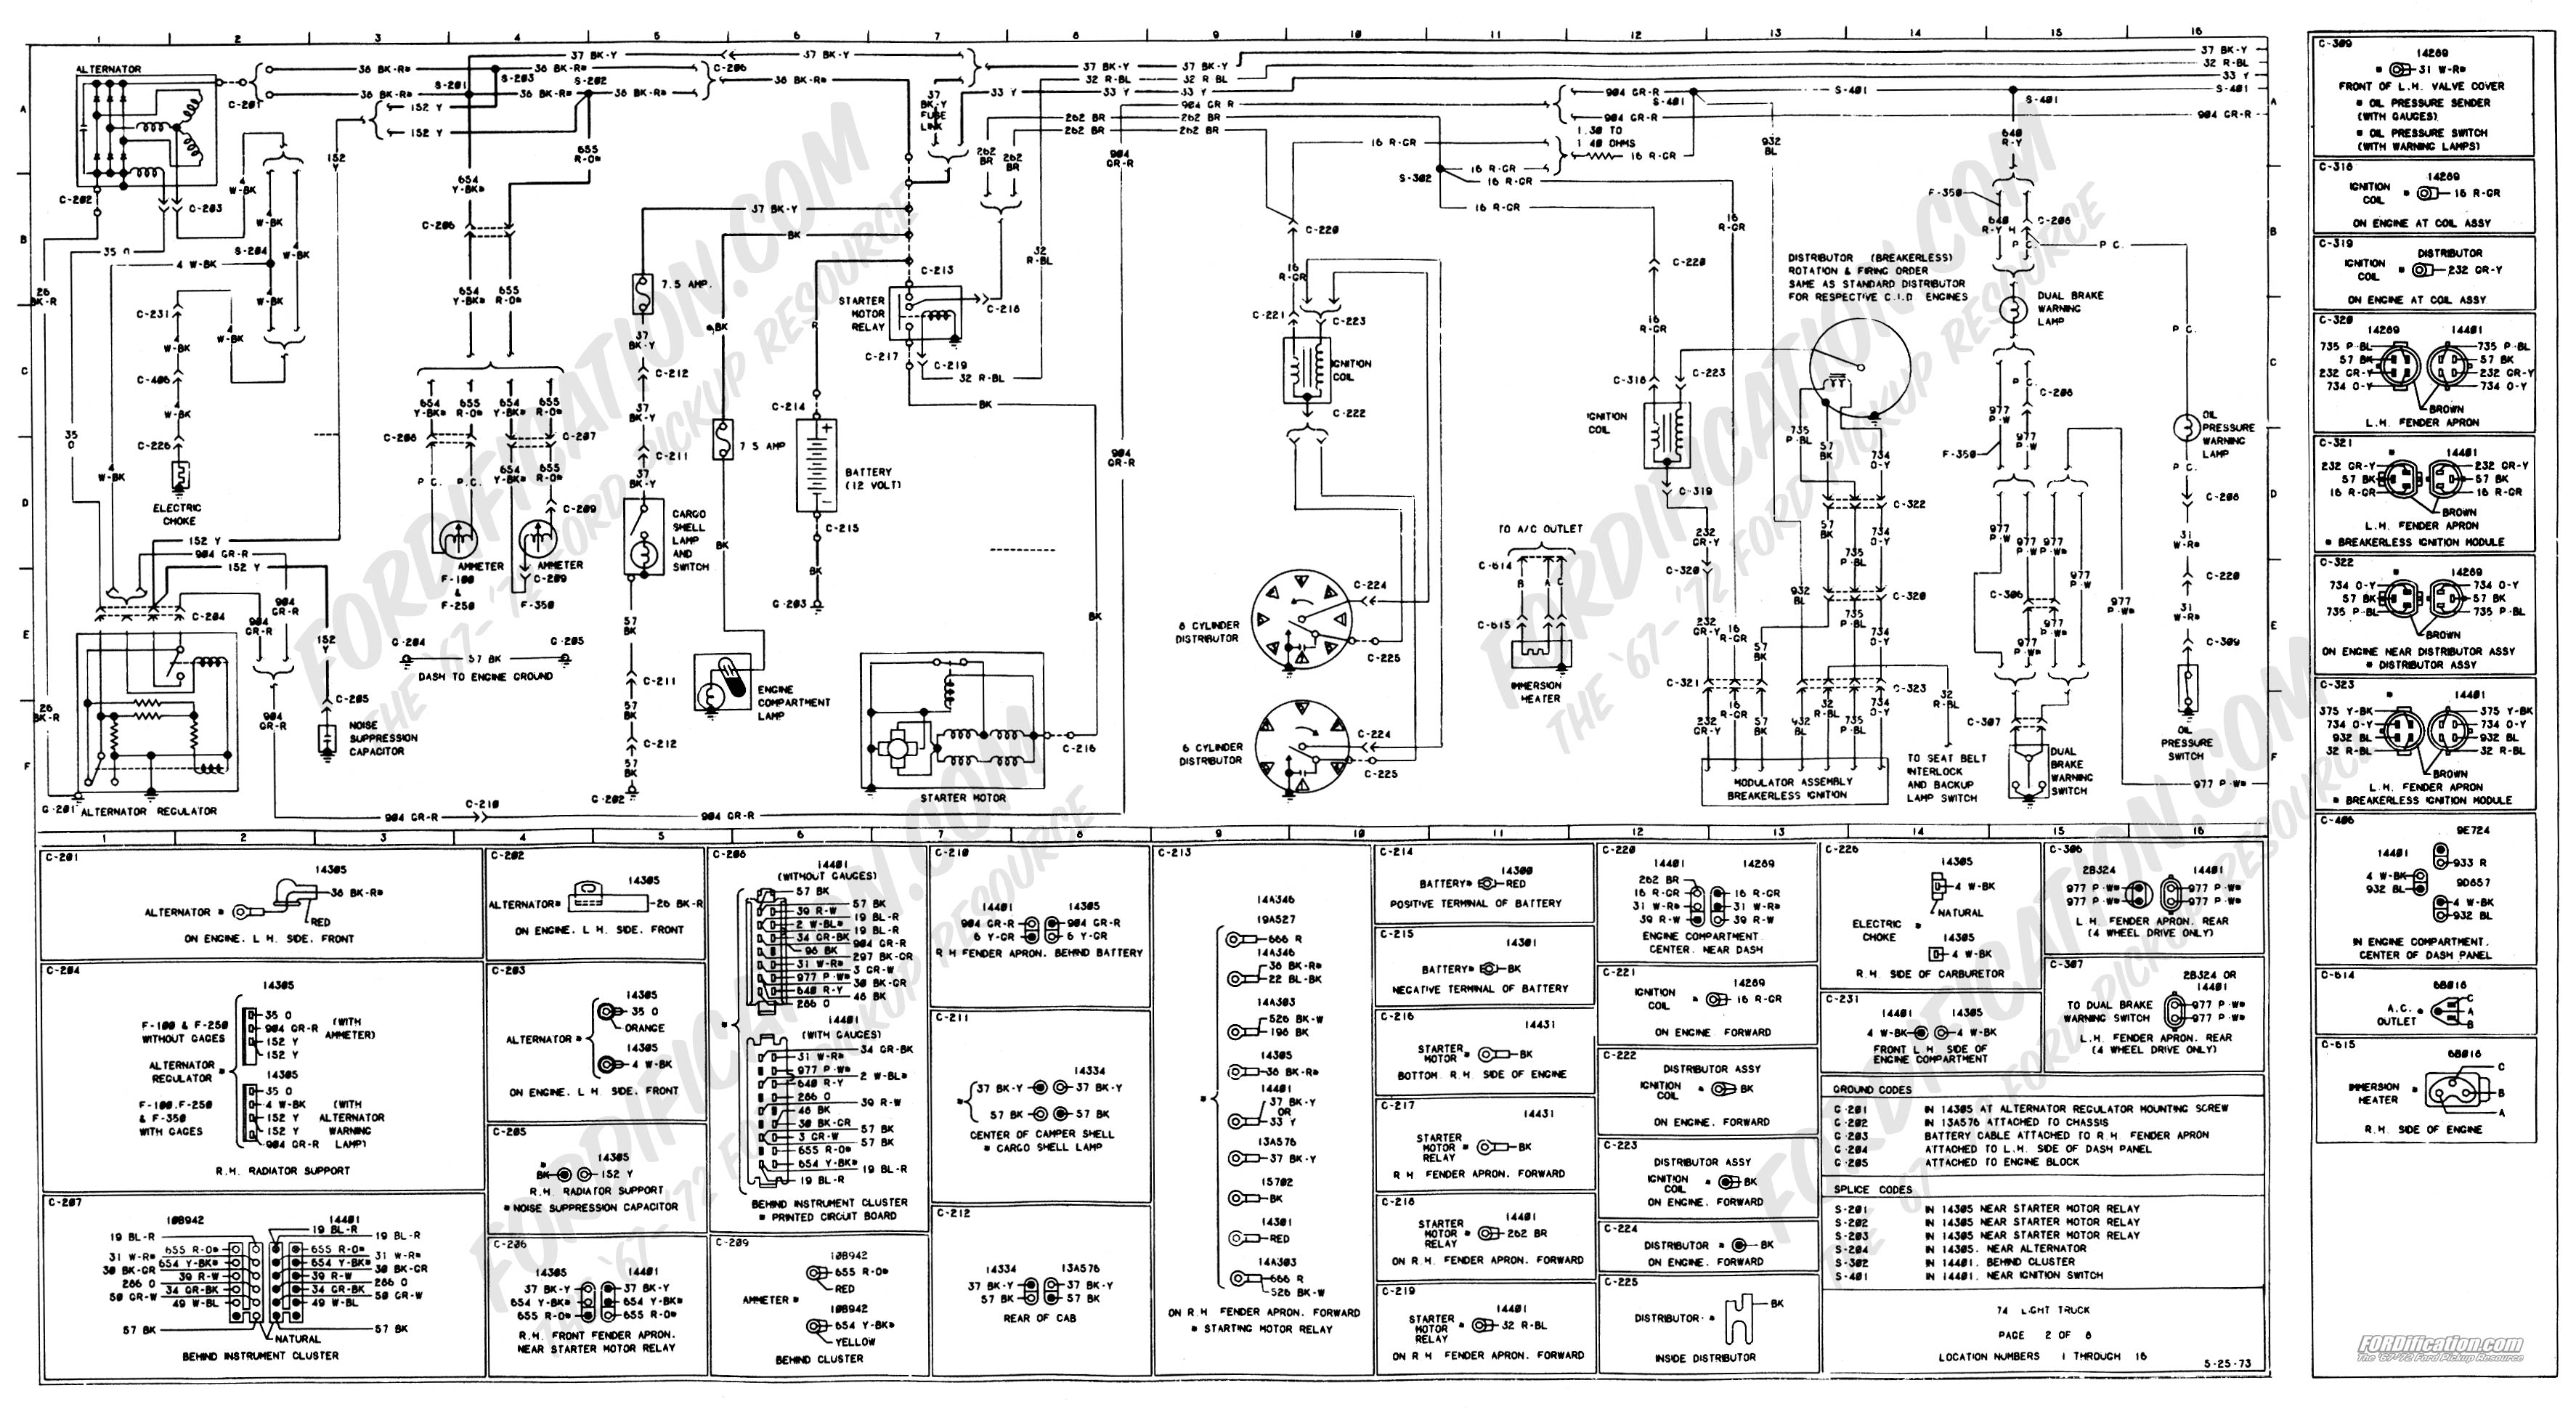 78 ford wiring diagram wiring data diagram rh 4 meditativ wandern de